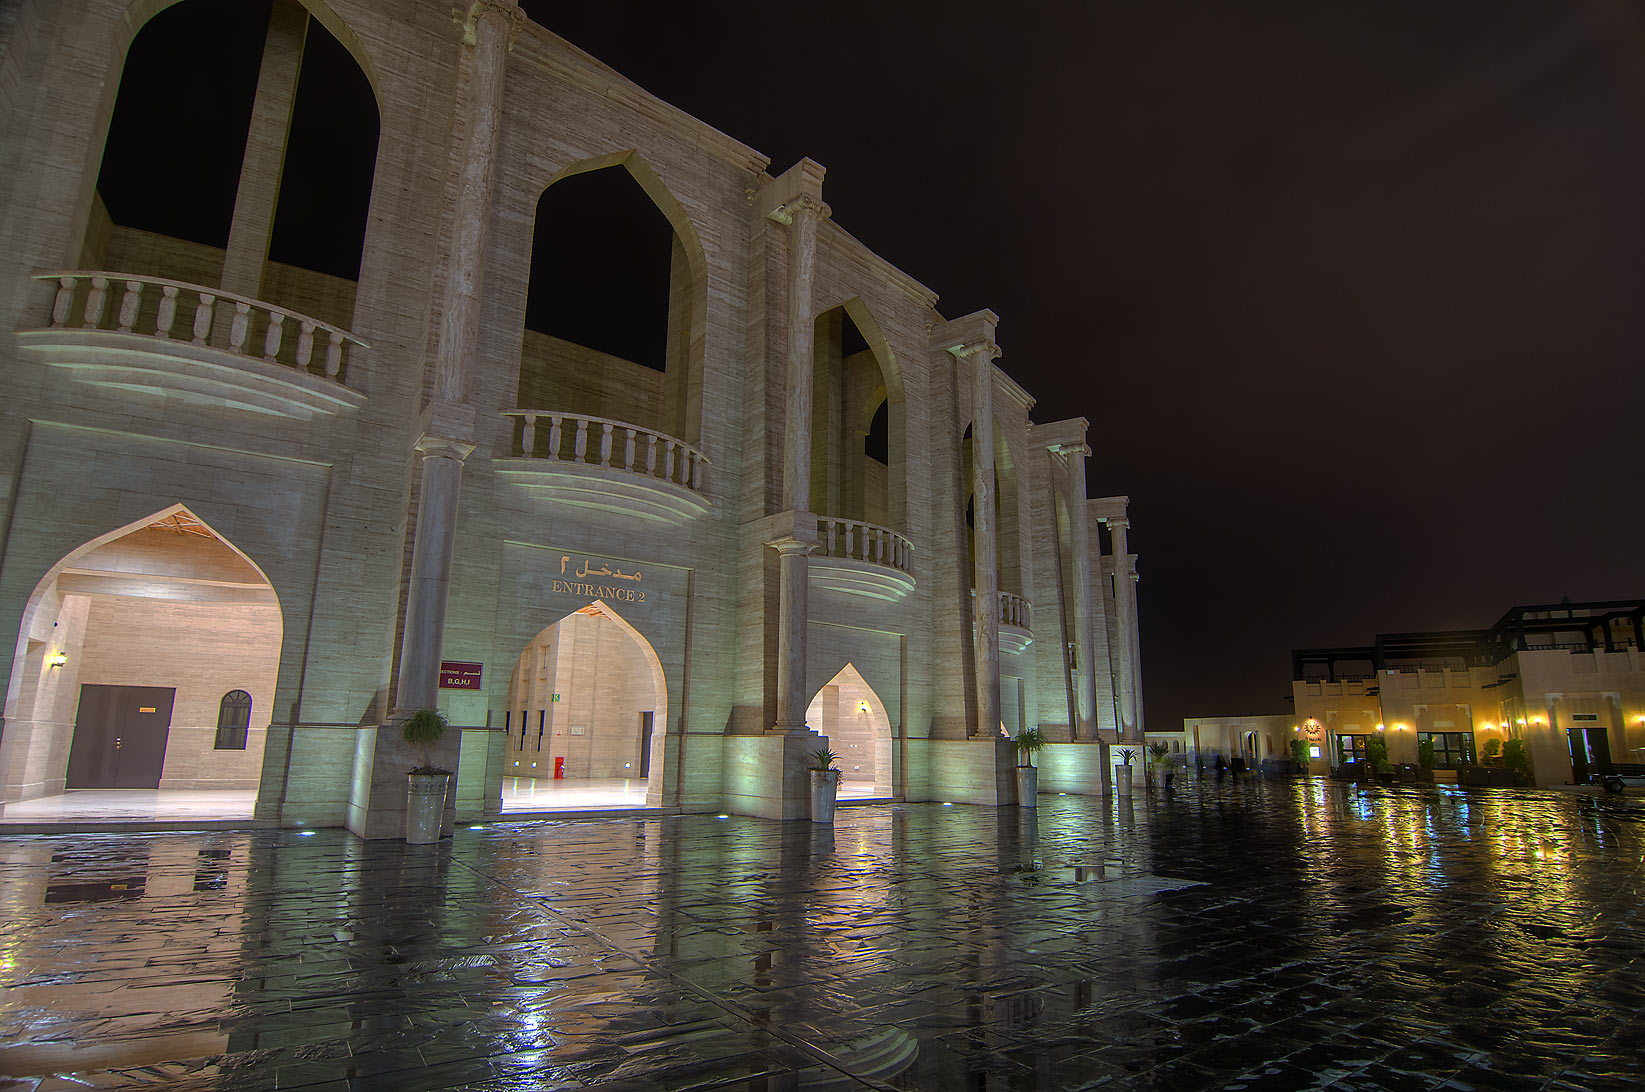 Lights of amphitheatre in Katara Cultural Village at rain. Doha, Qatar